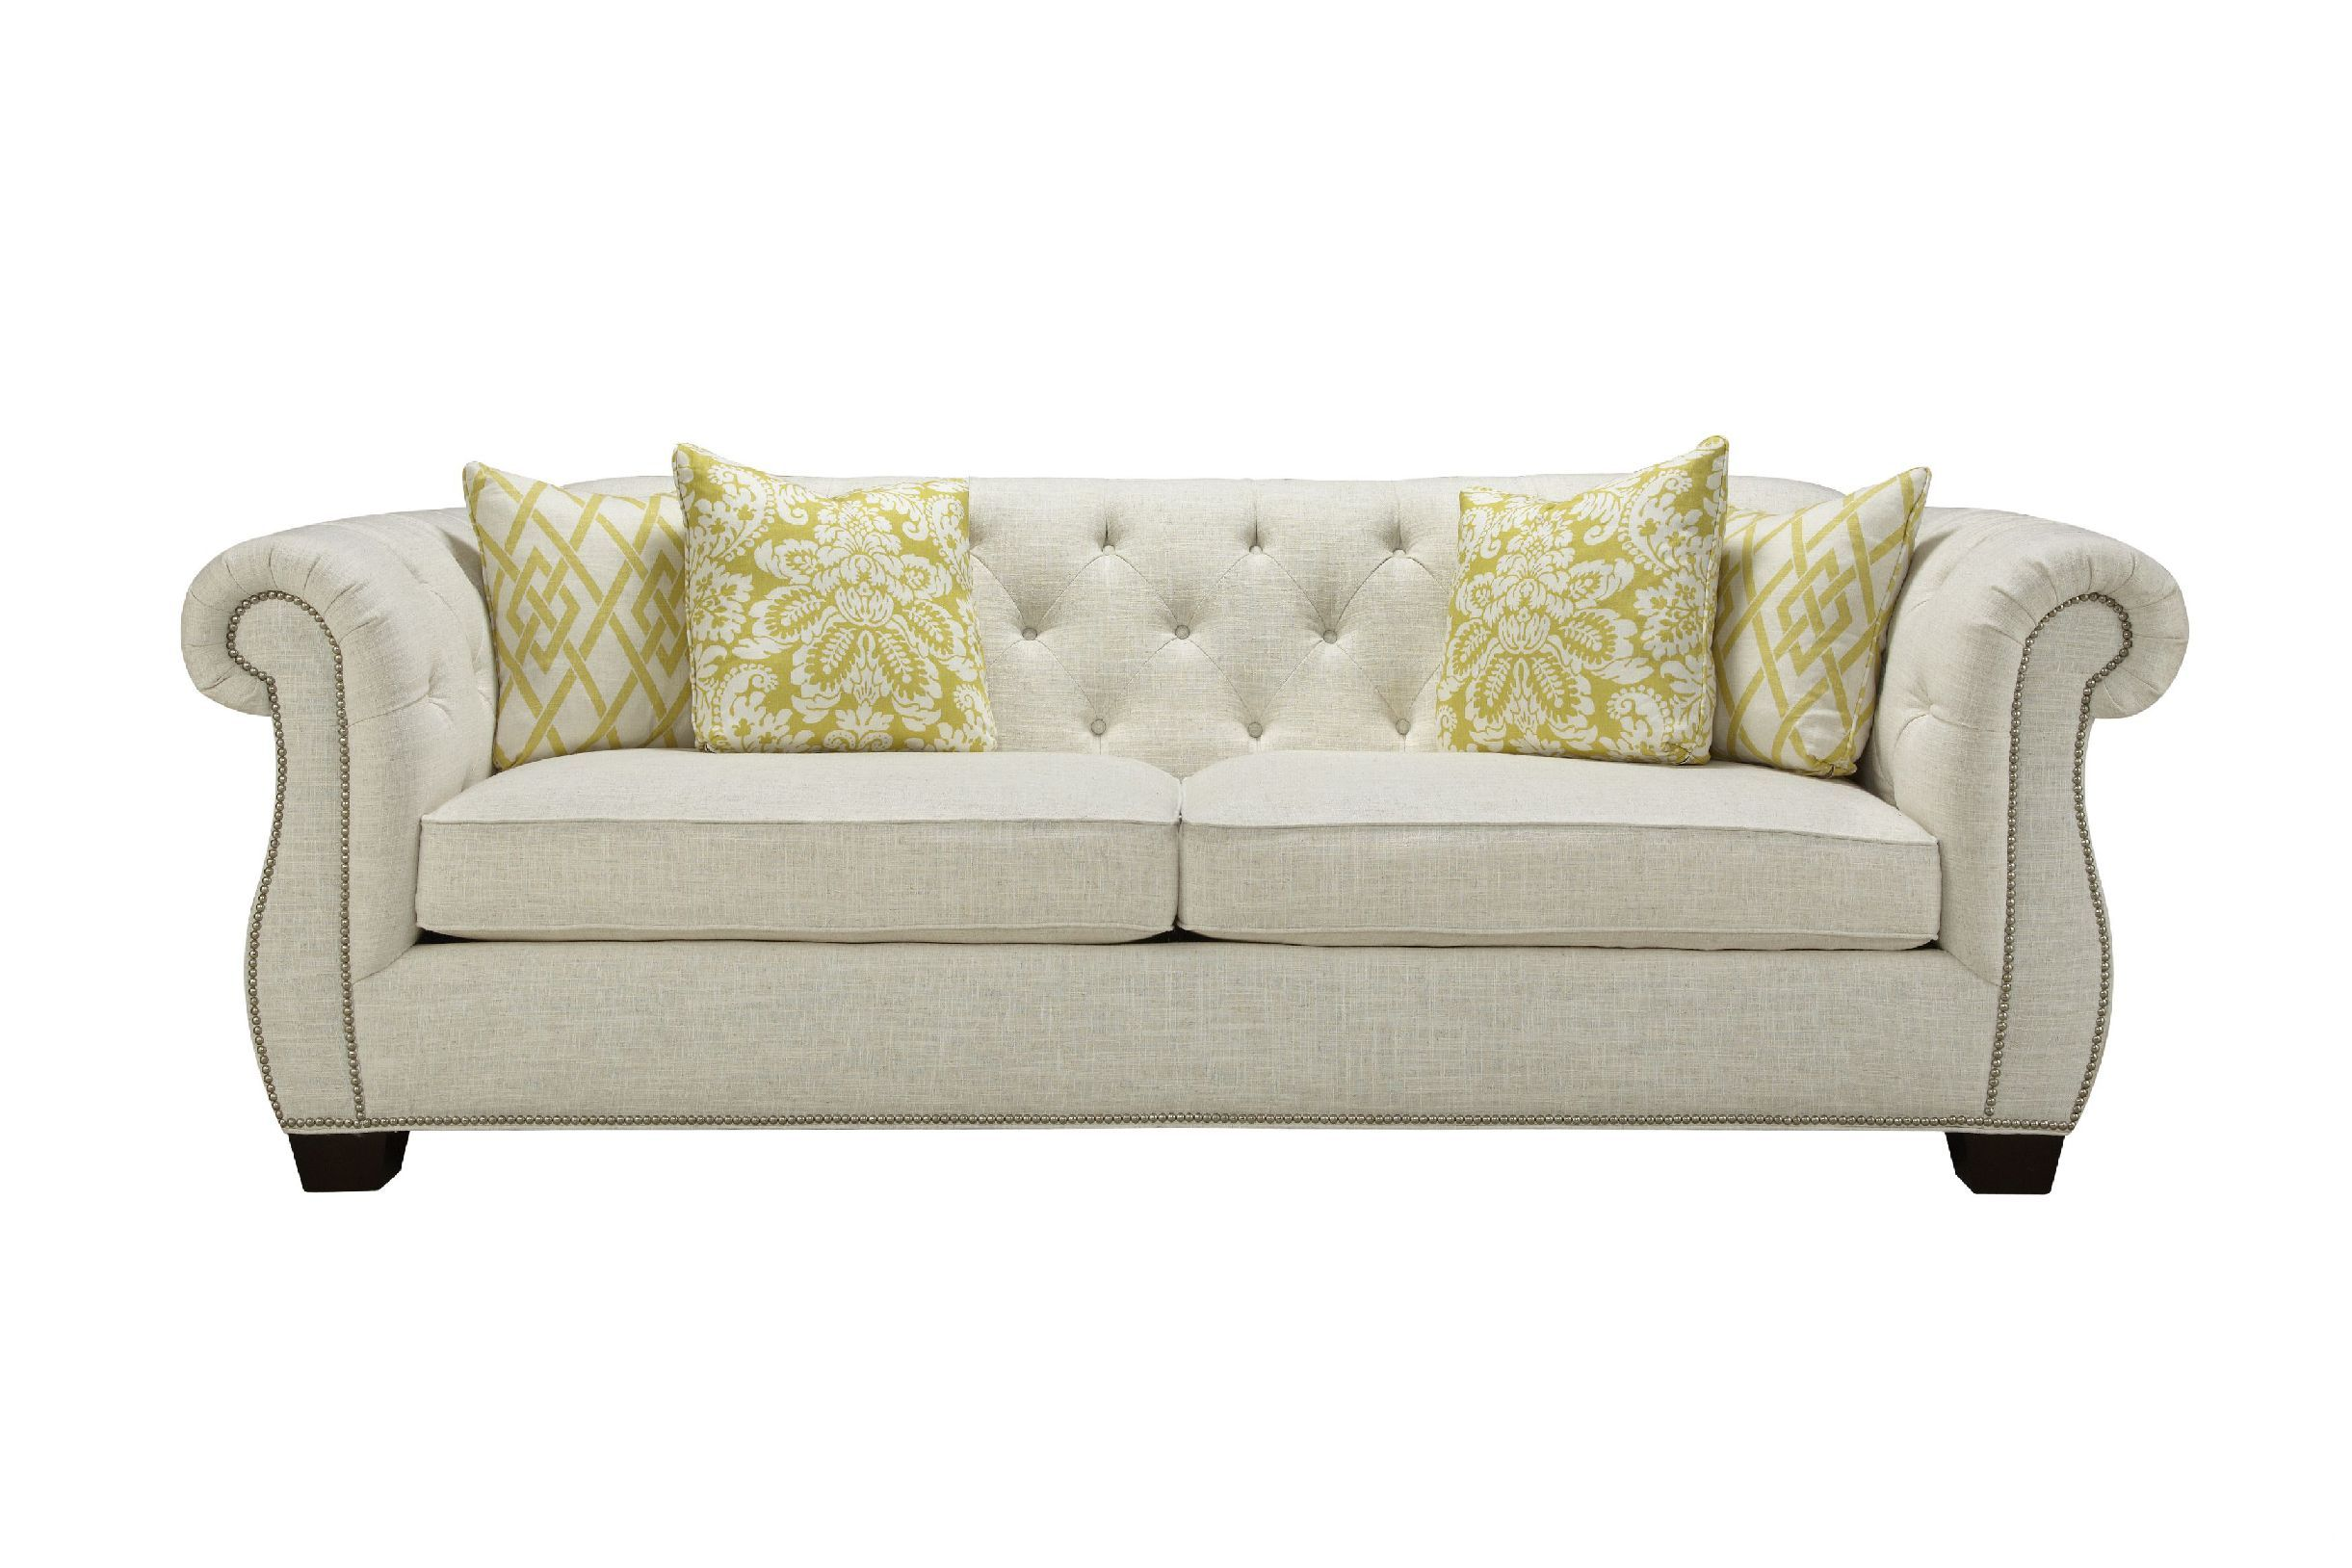 Southern Furniture Living Room Bradshaw Sofa 41041   Hickory Furniture Mart    Hickory, NC